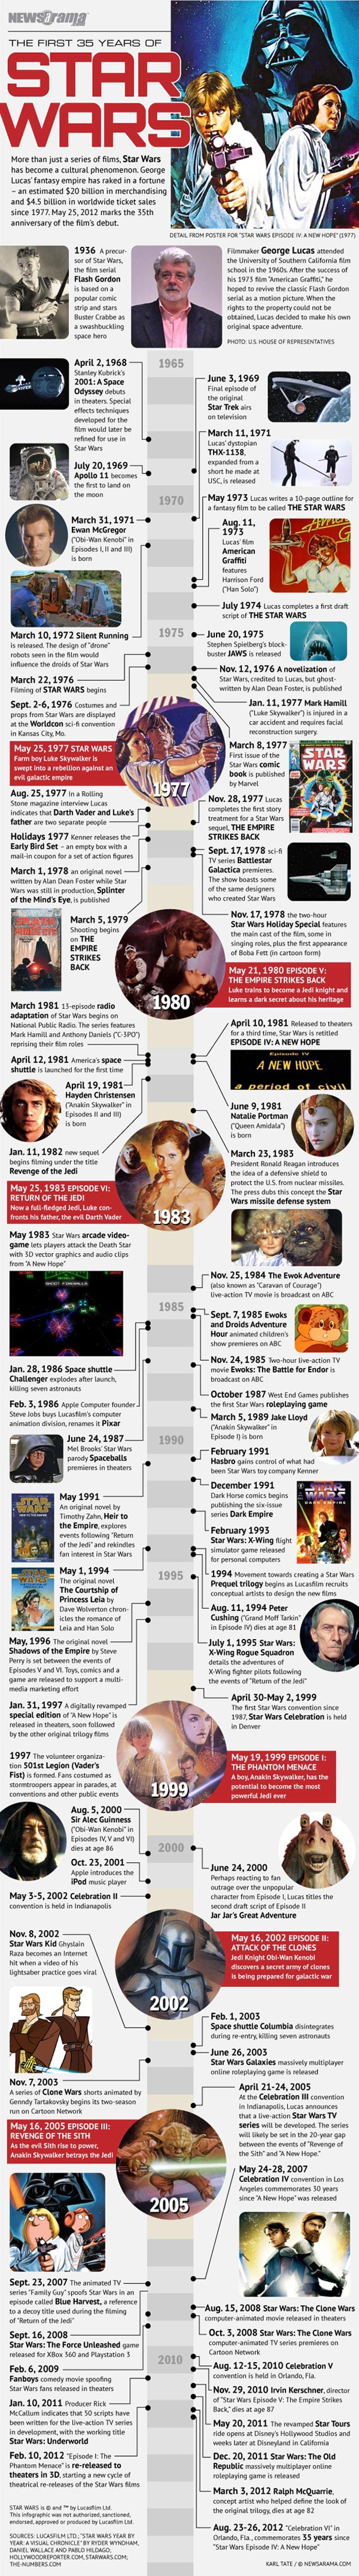 Star-Wars-35-Years-Infographic